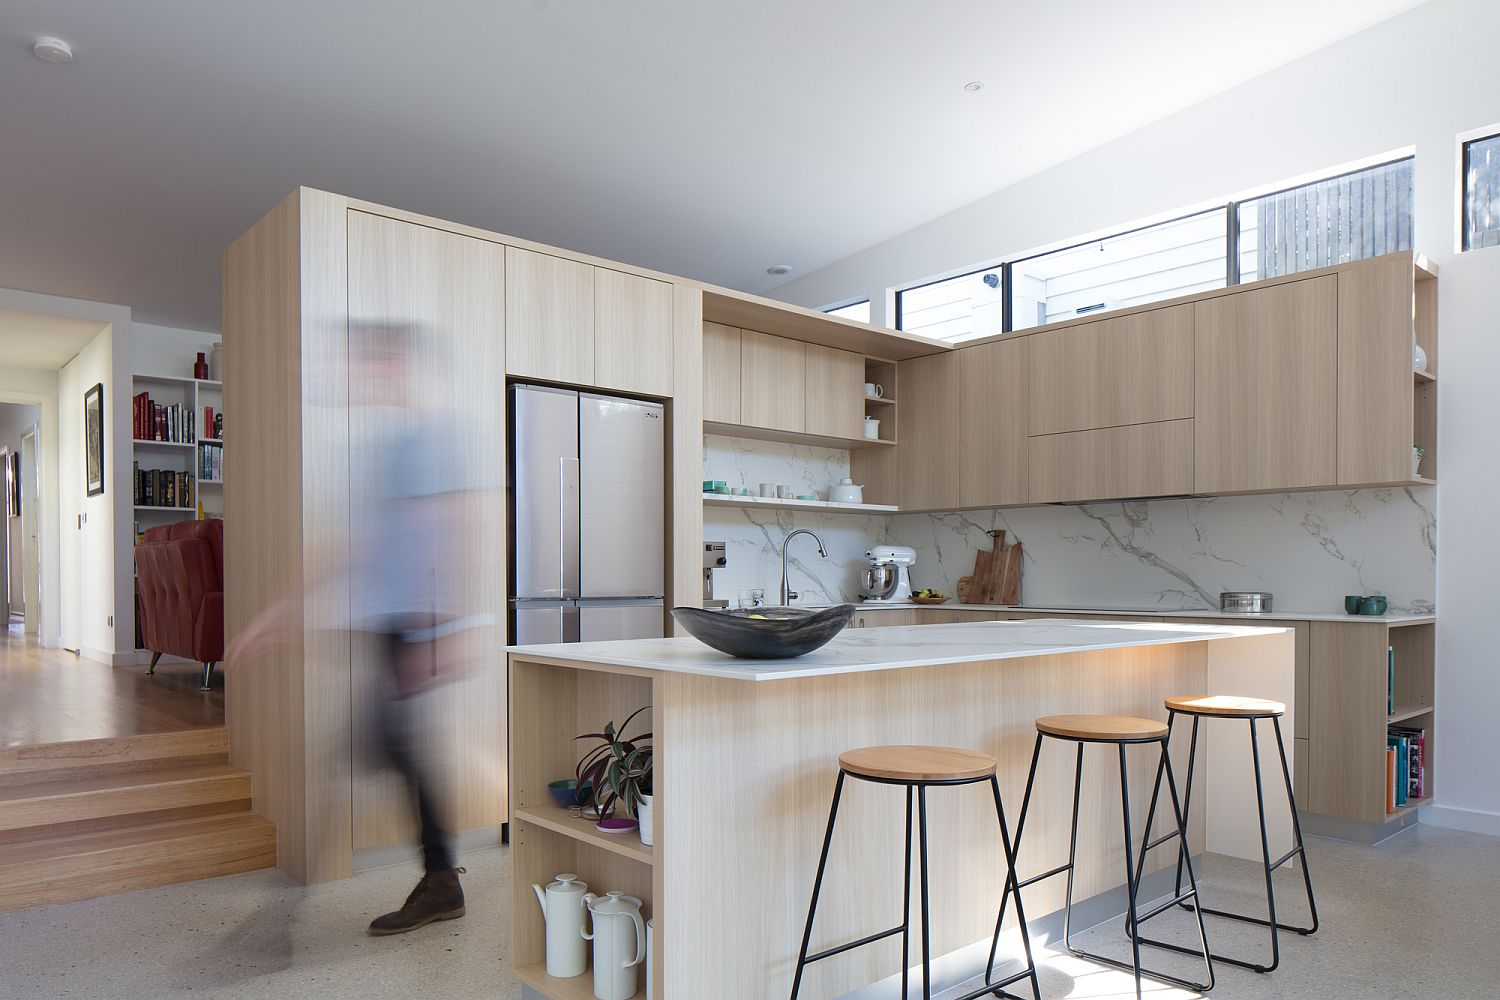 Wood and white kitchen are becoming increasingly popular across the globe